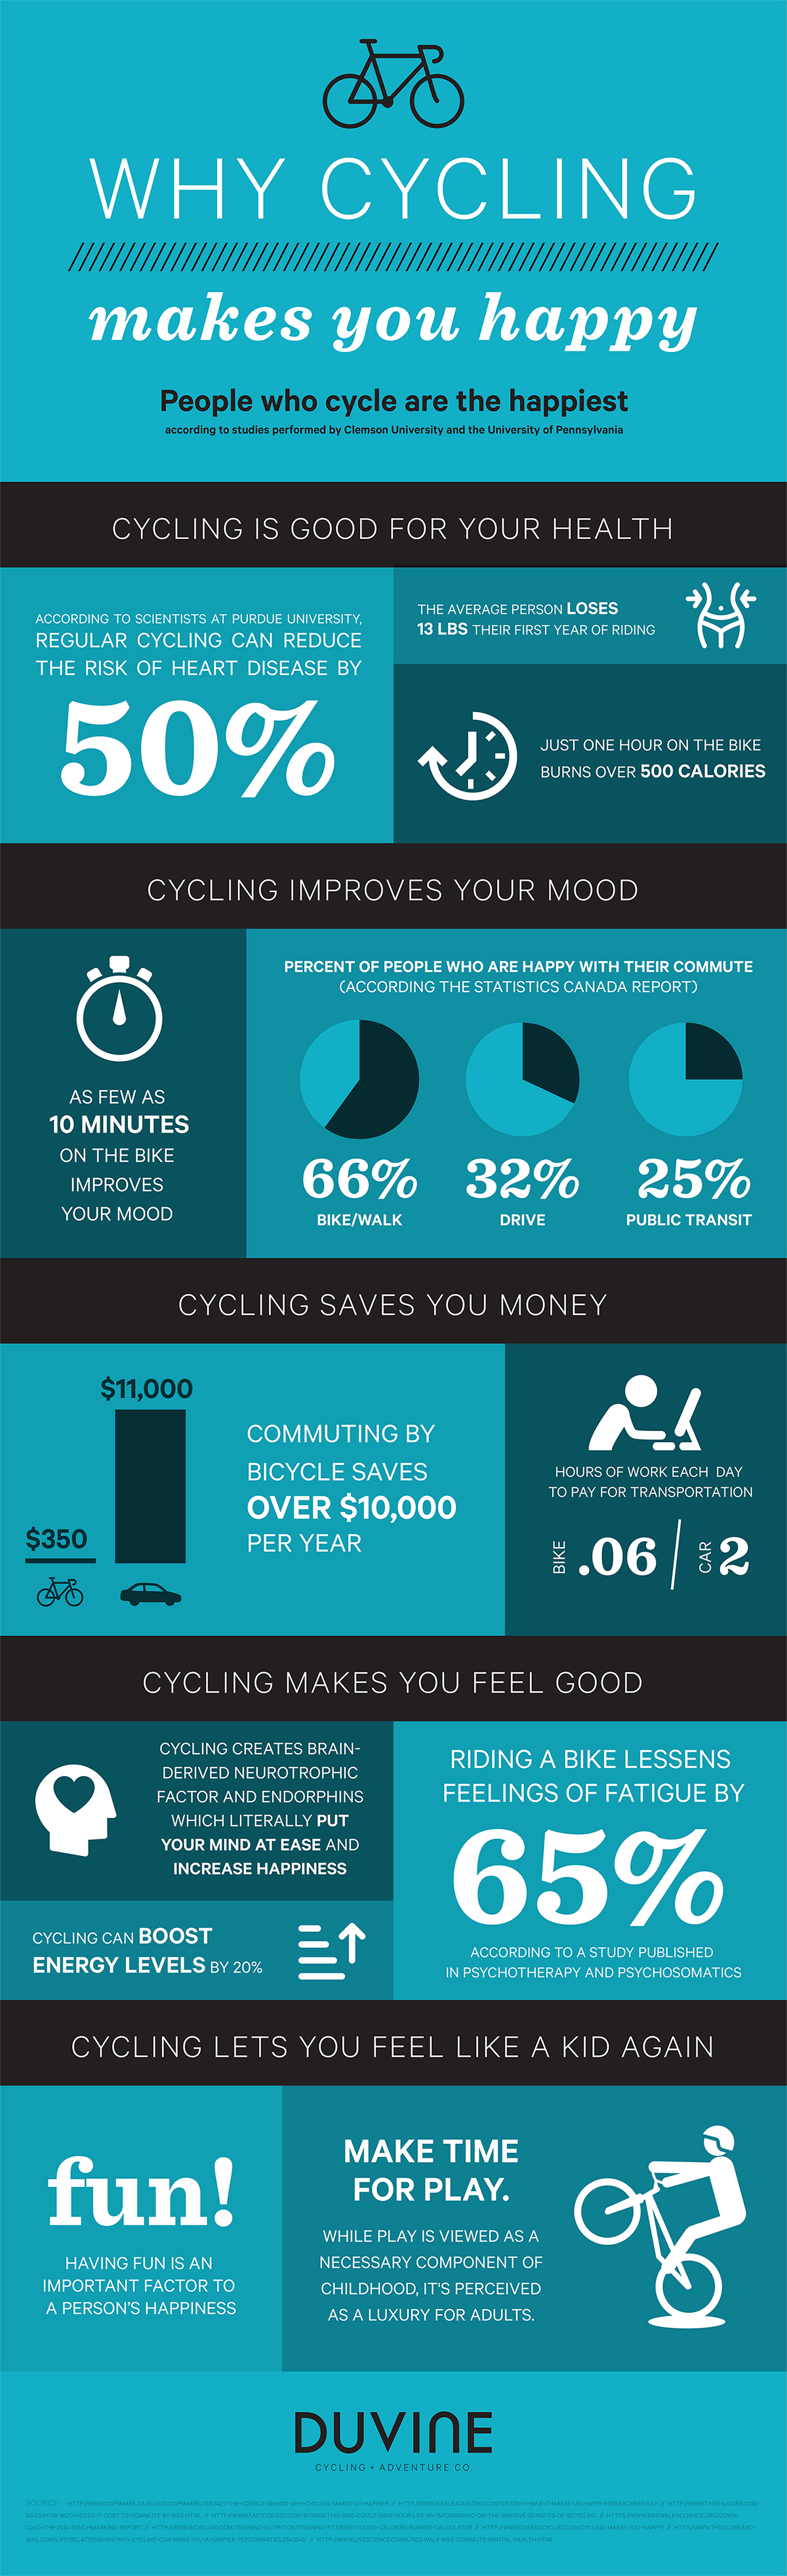 Why Cycling Makes You Happy